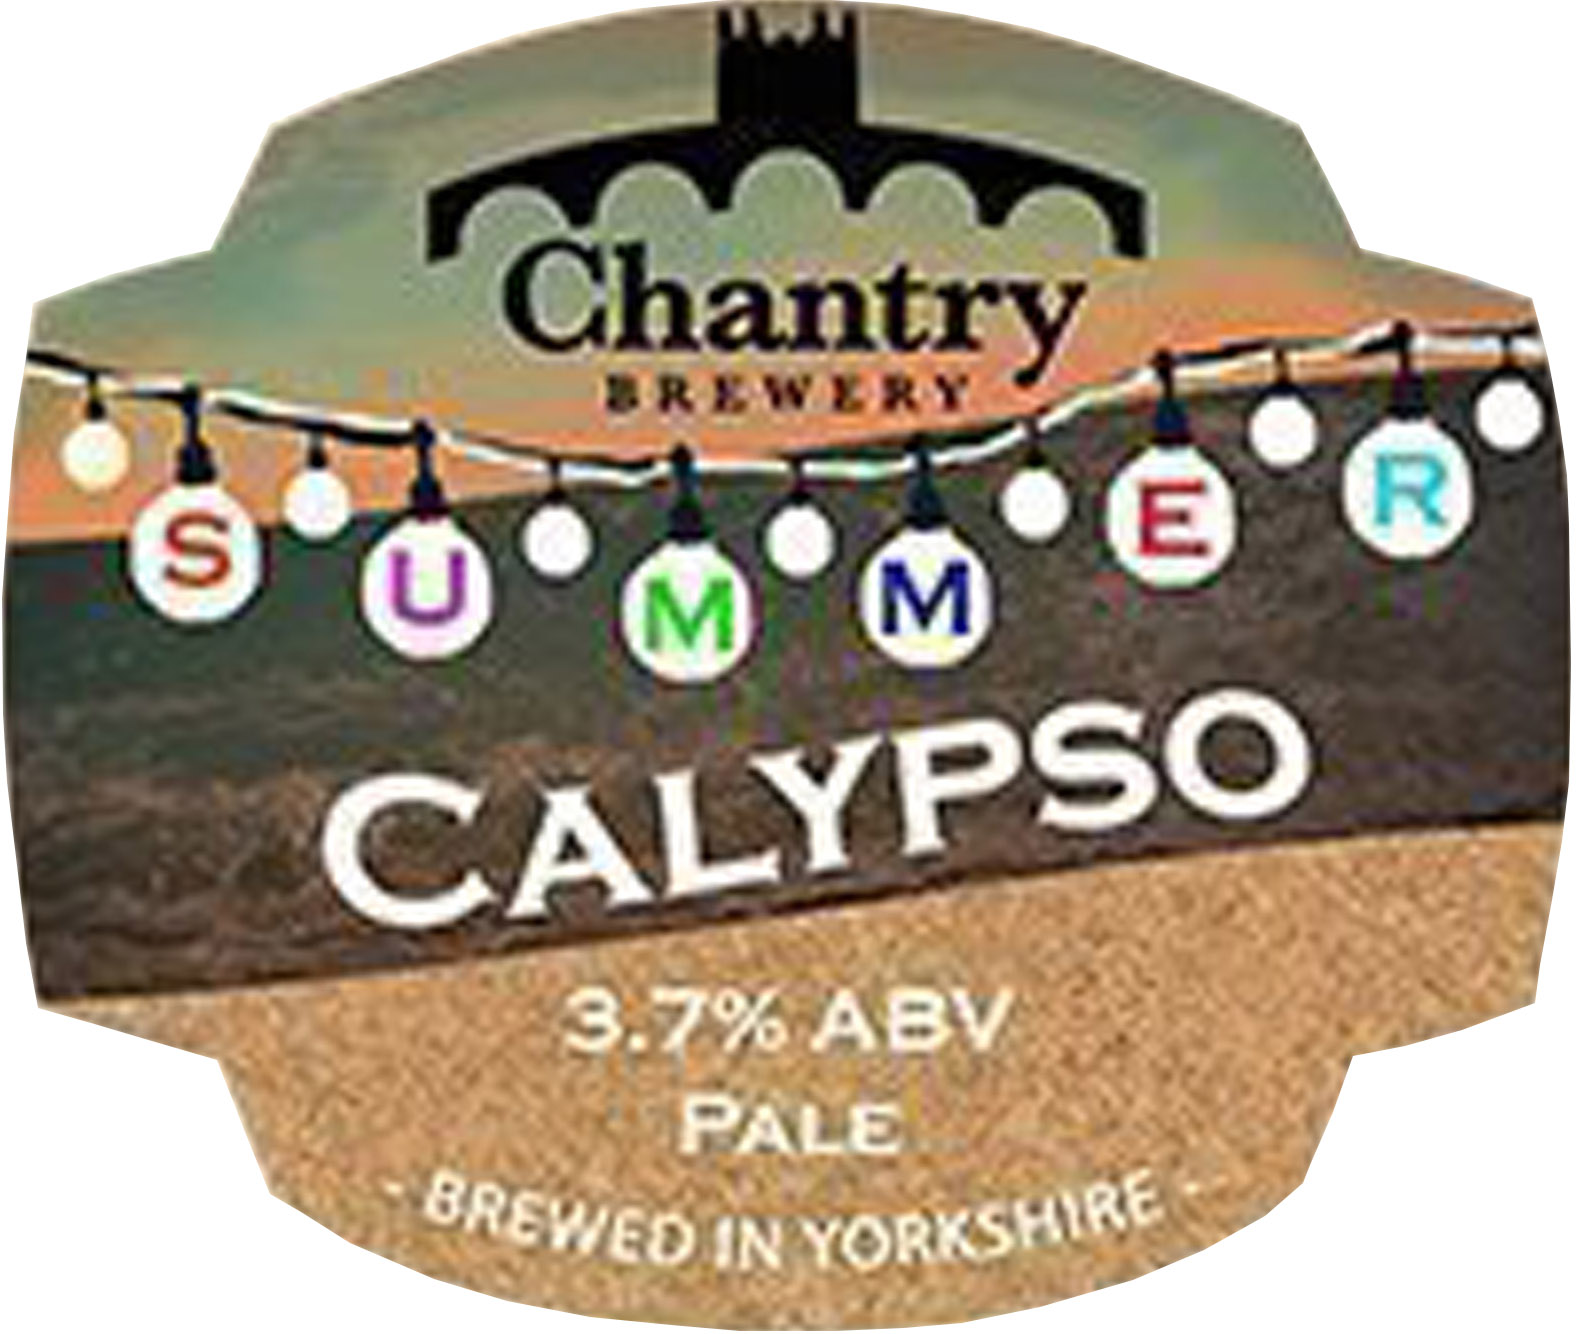 Chantry Brewery Summer Calypso